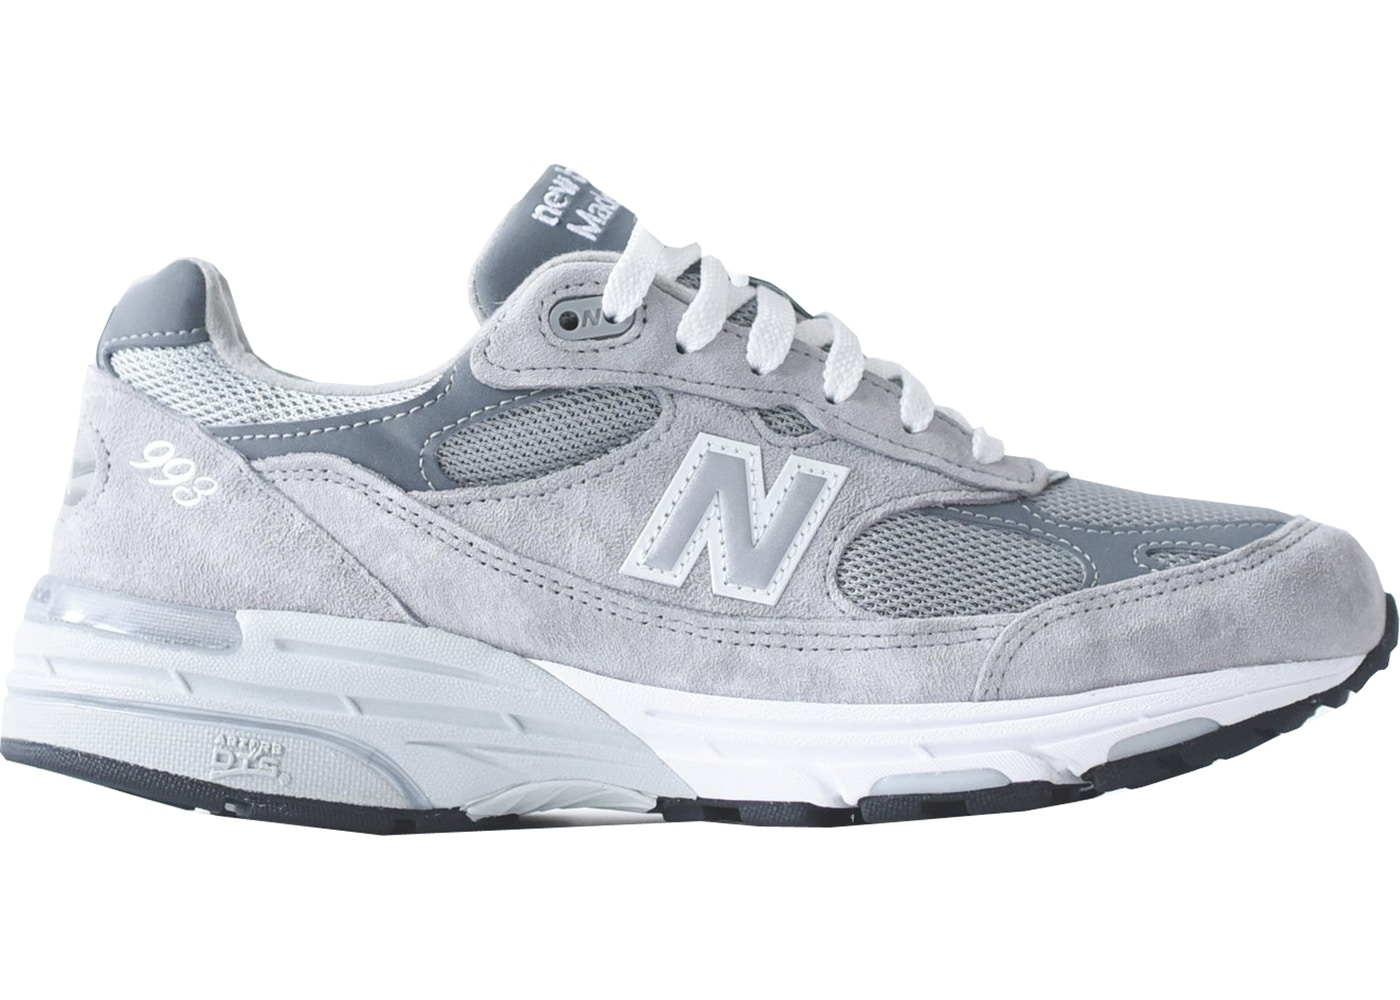 faa3100b09471 New Balance Size 8 Shoes - Featured